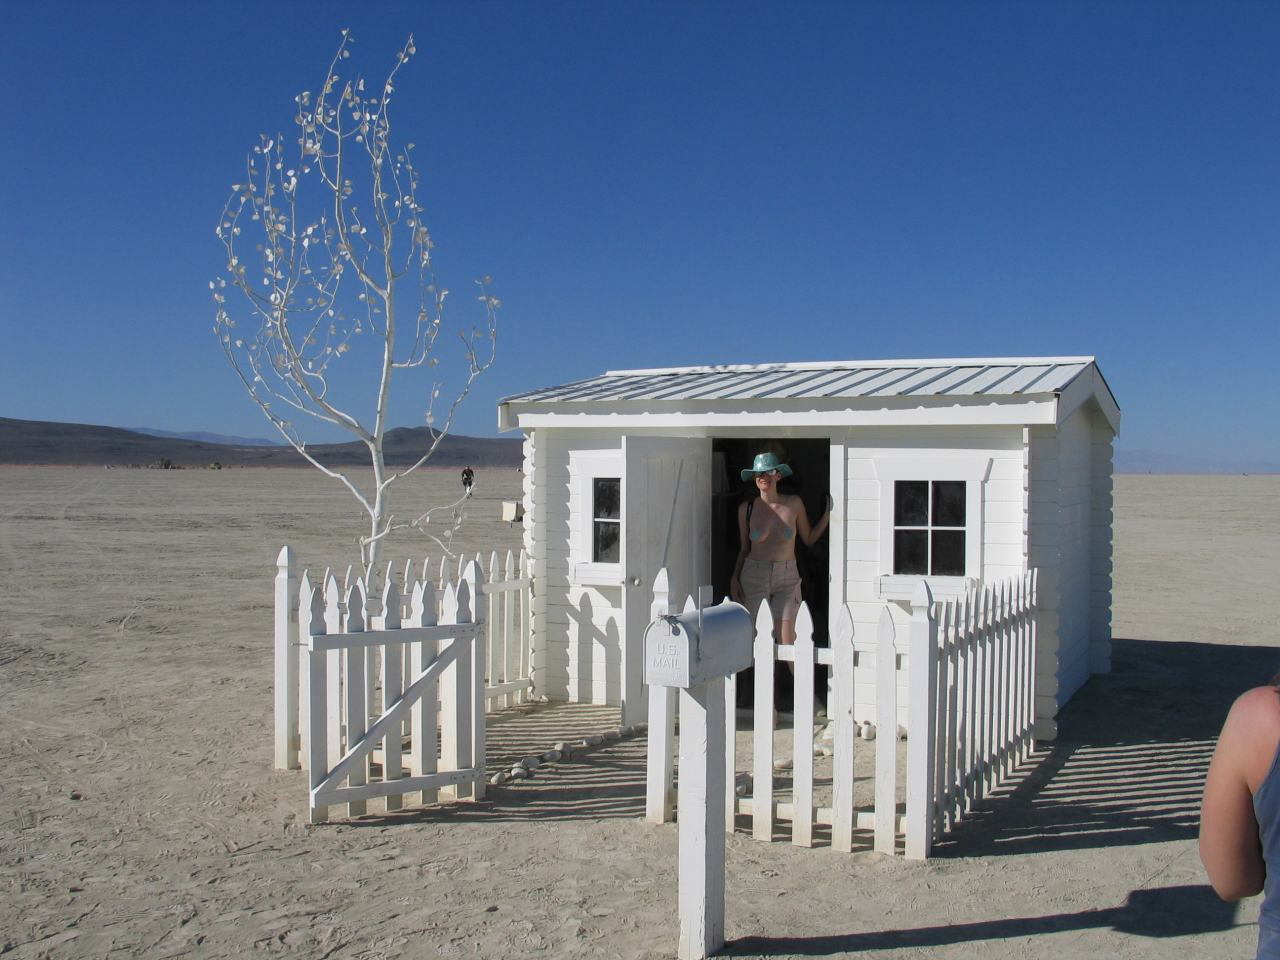 a small home with picket fence out in the deep desert complete with mailbox full of gifts brads photos